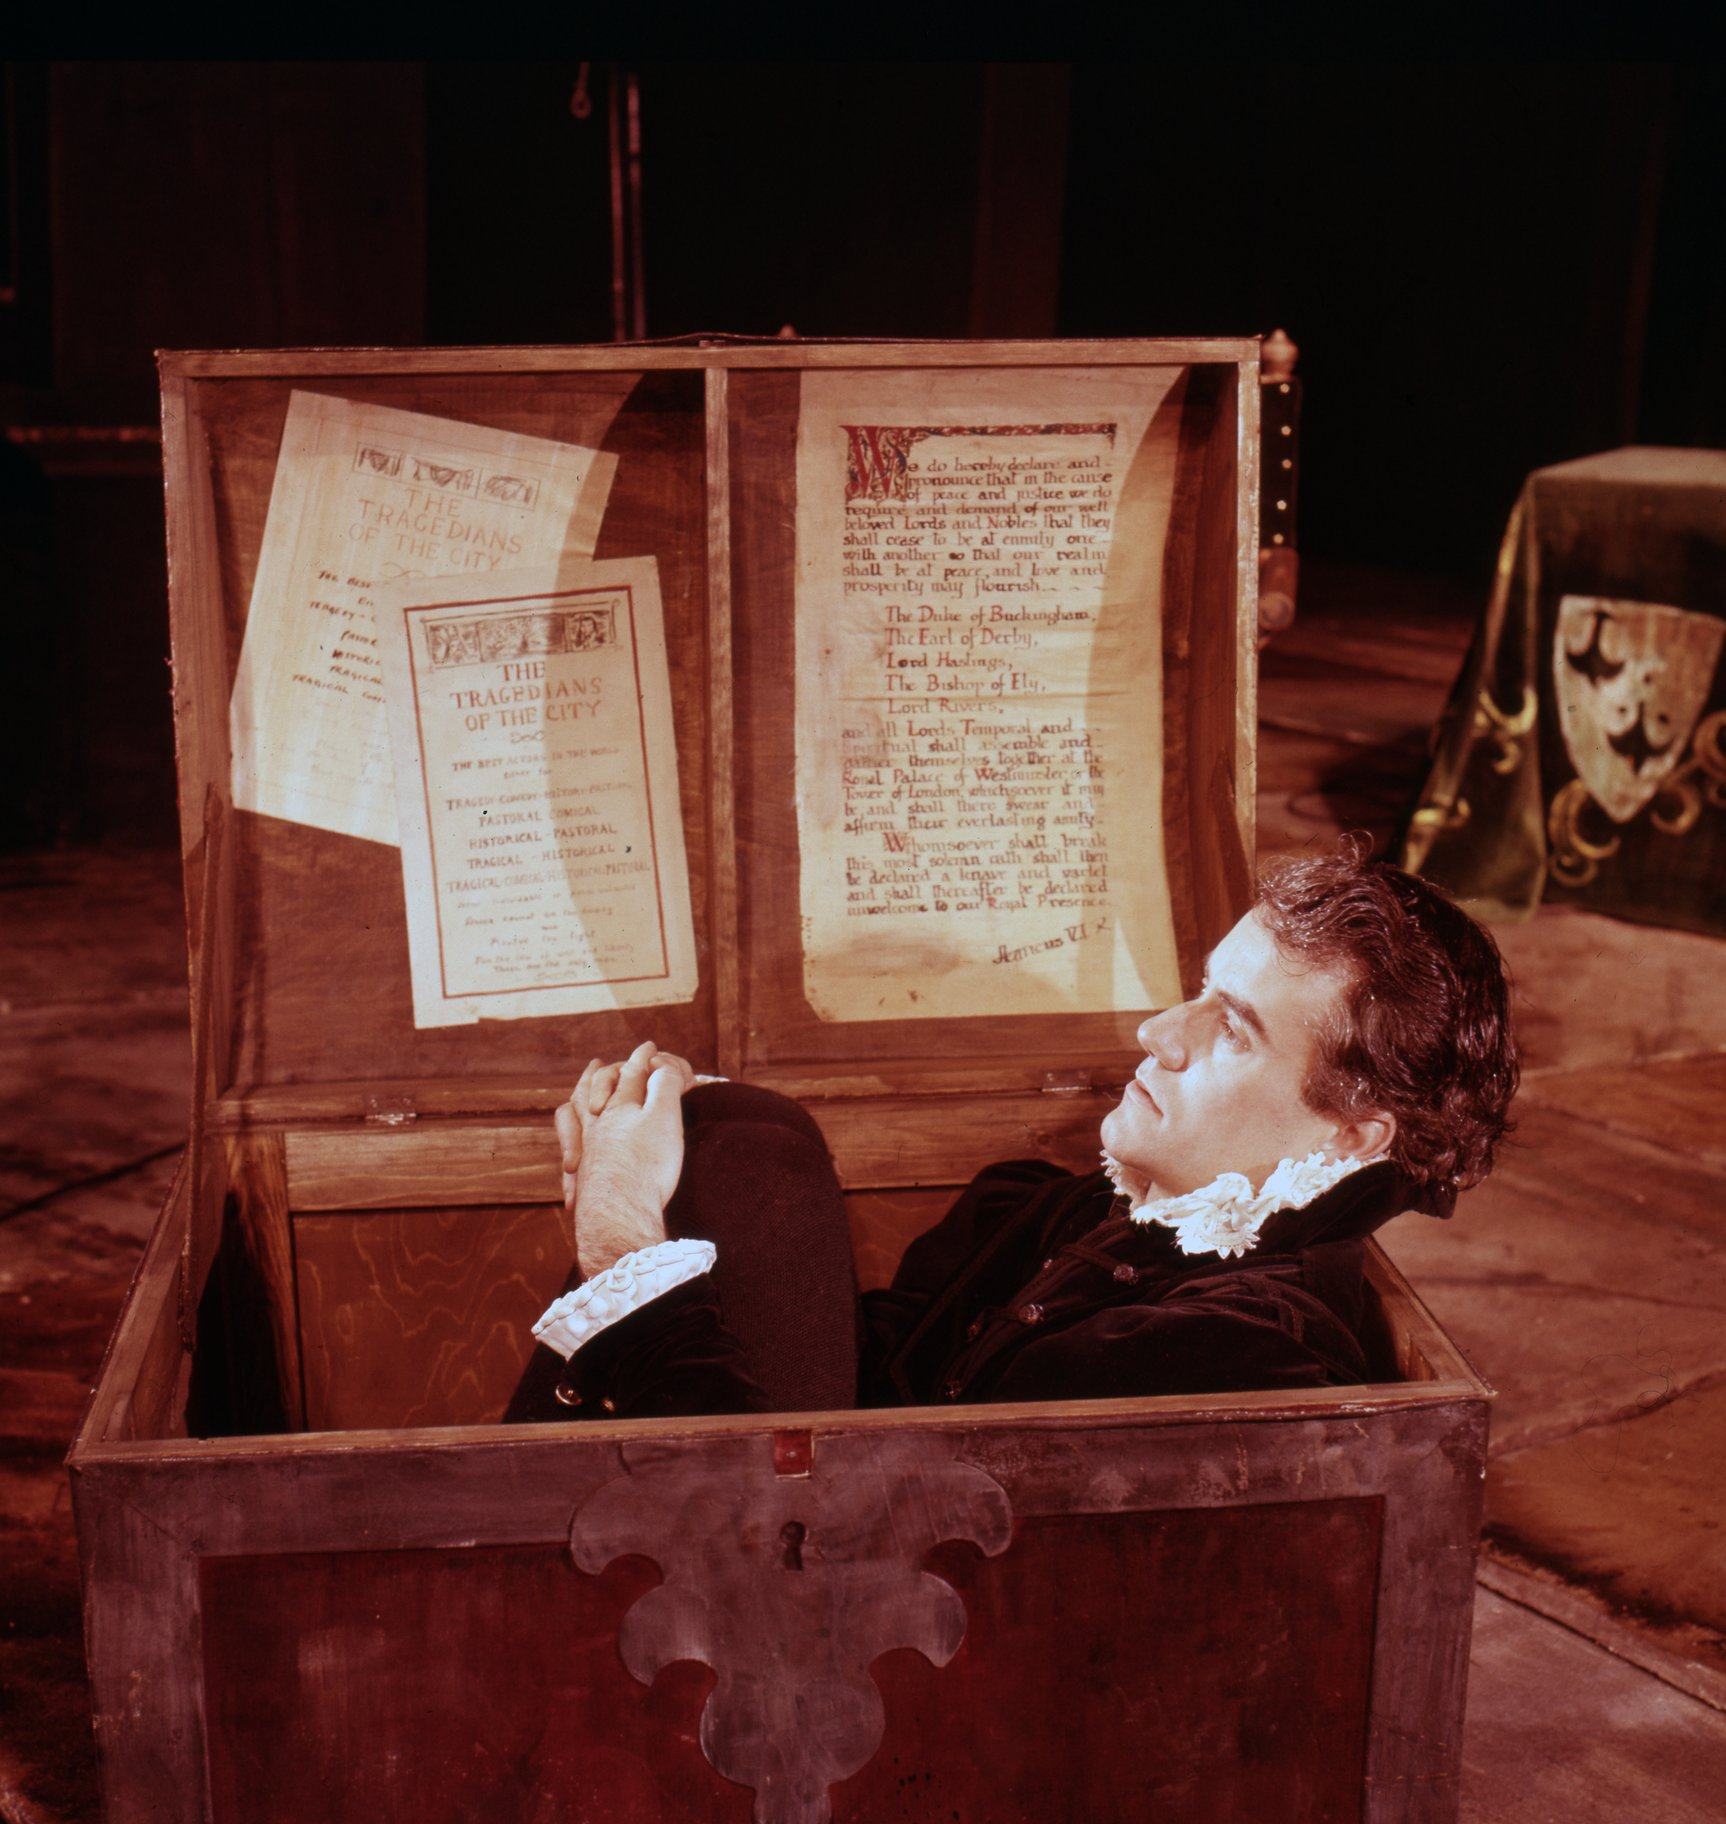 Ian Bannen as Hamlet, sitting in a wooden chest.